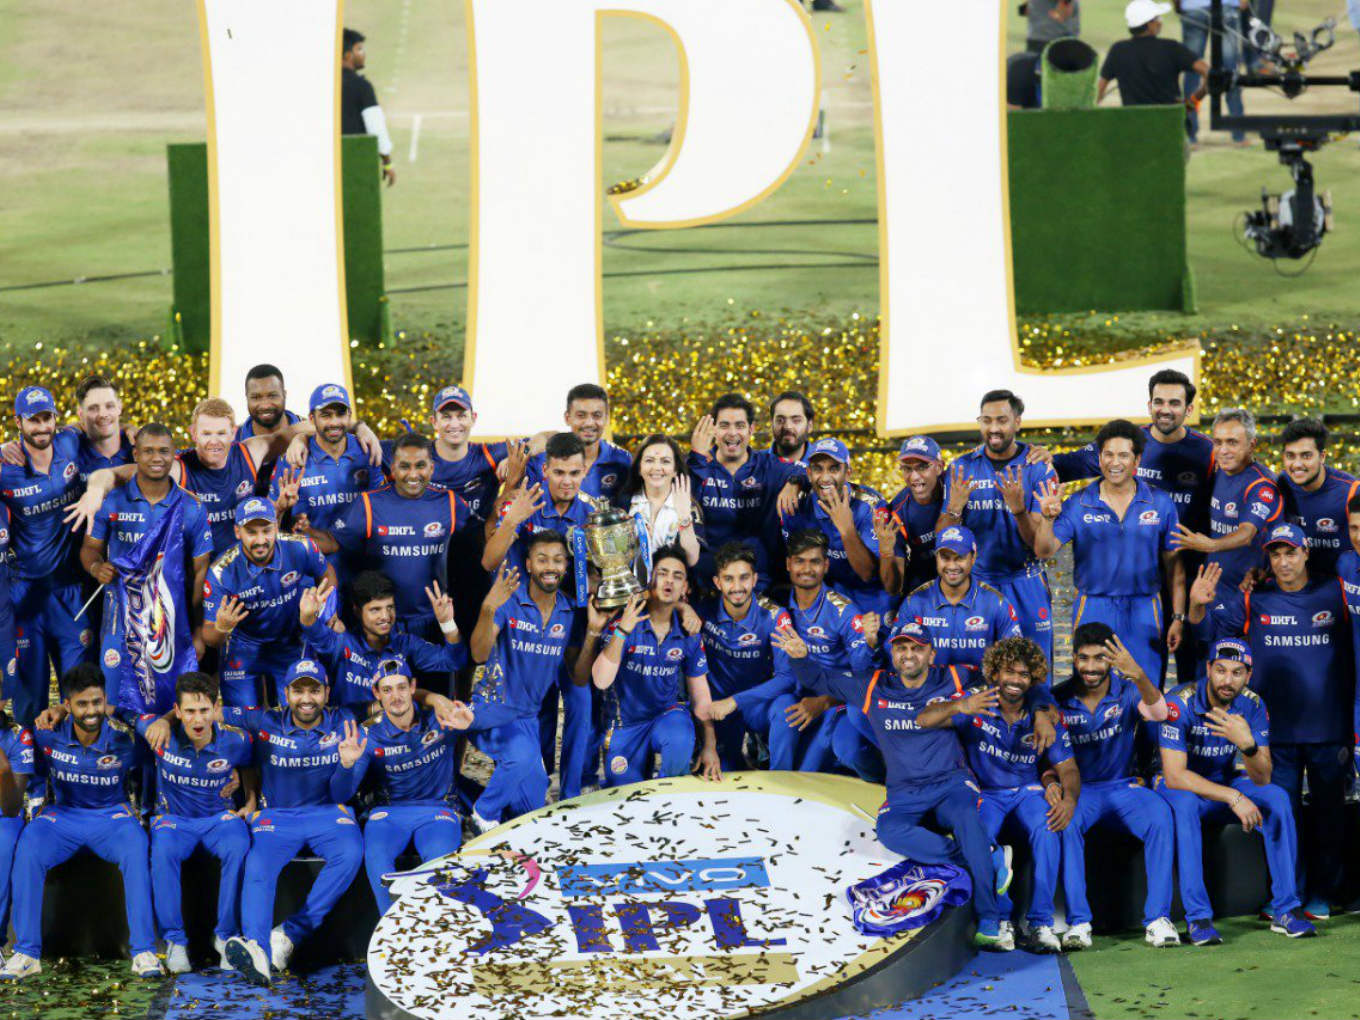 Hotstar Breaks Its Own Record As 18.6 Mn Active Users Stream IPL Final